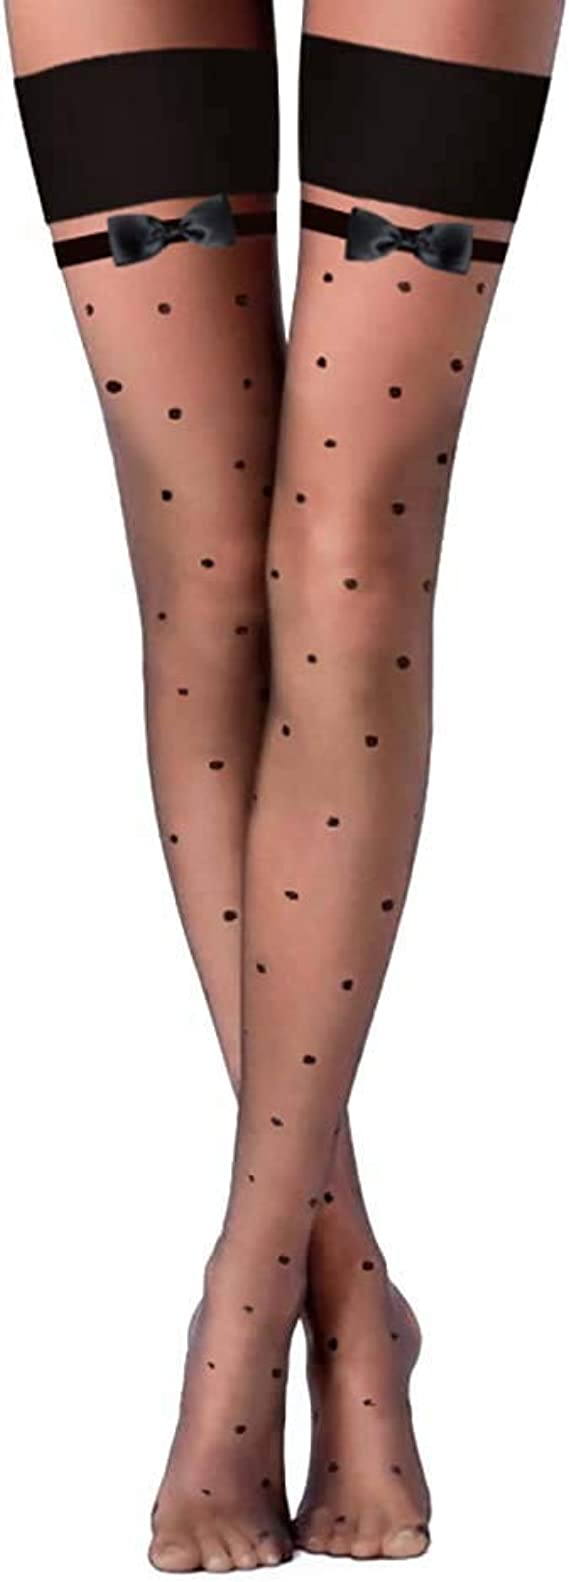 Details about  /New Women/'s Black Dotted Sheer Mesh Lace Thigh High Stockings